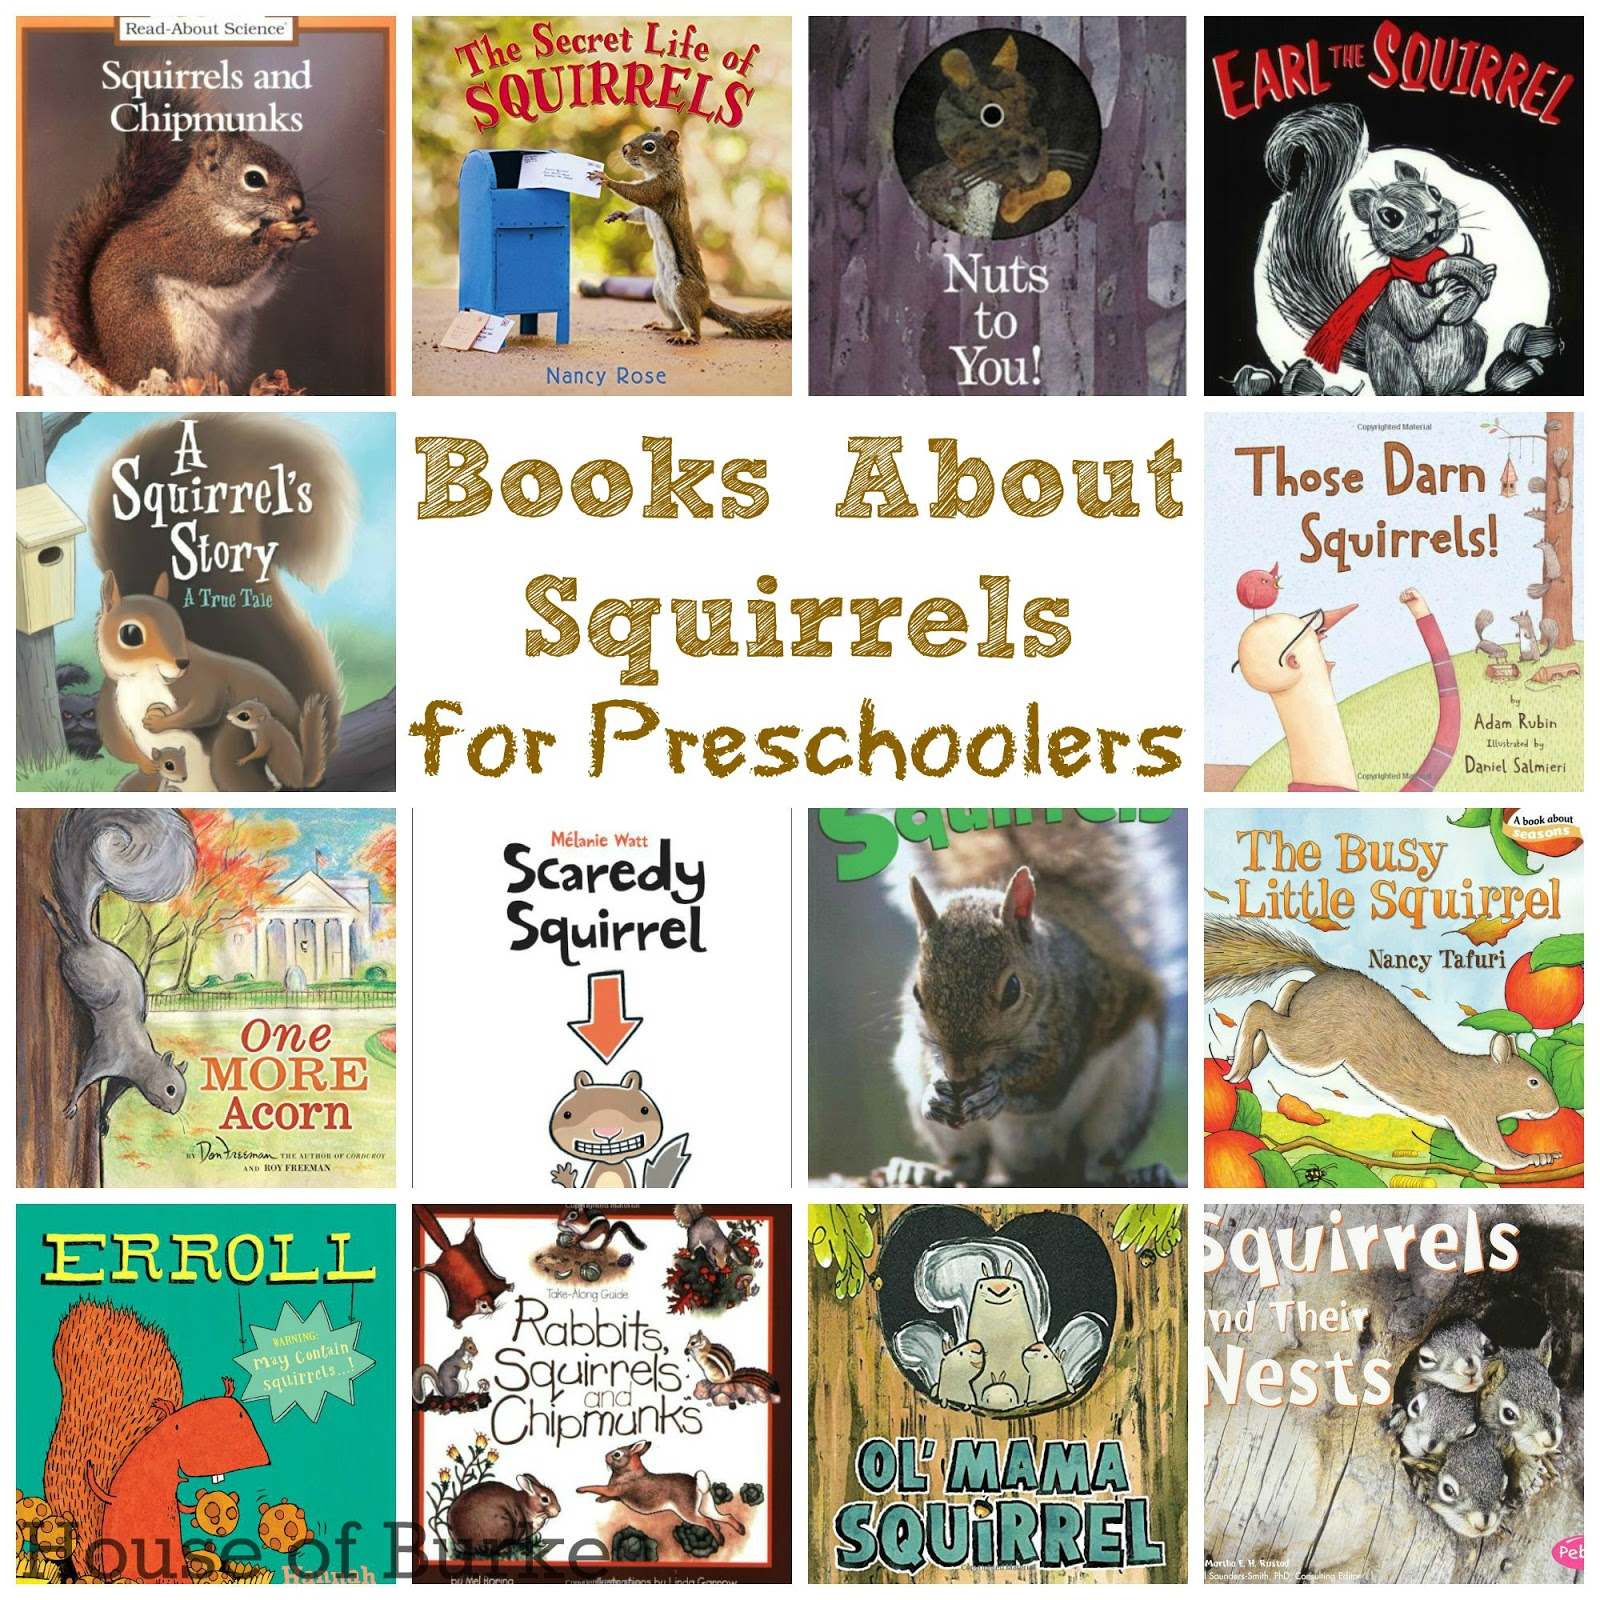 Books About Squirrels for Preschoolers